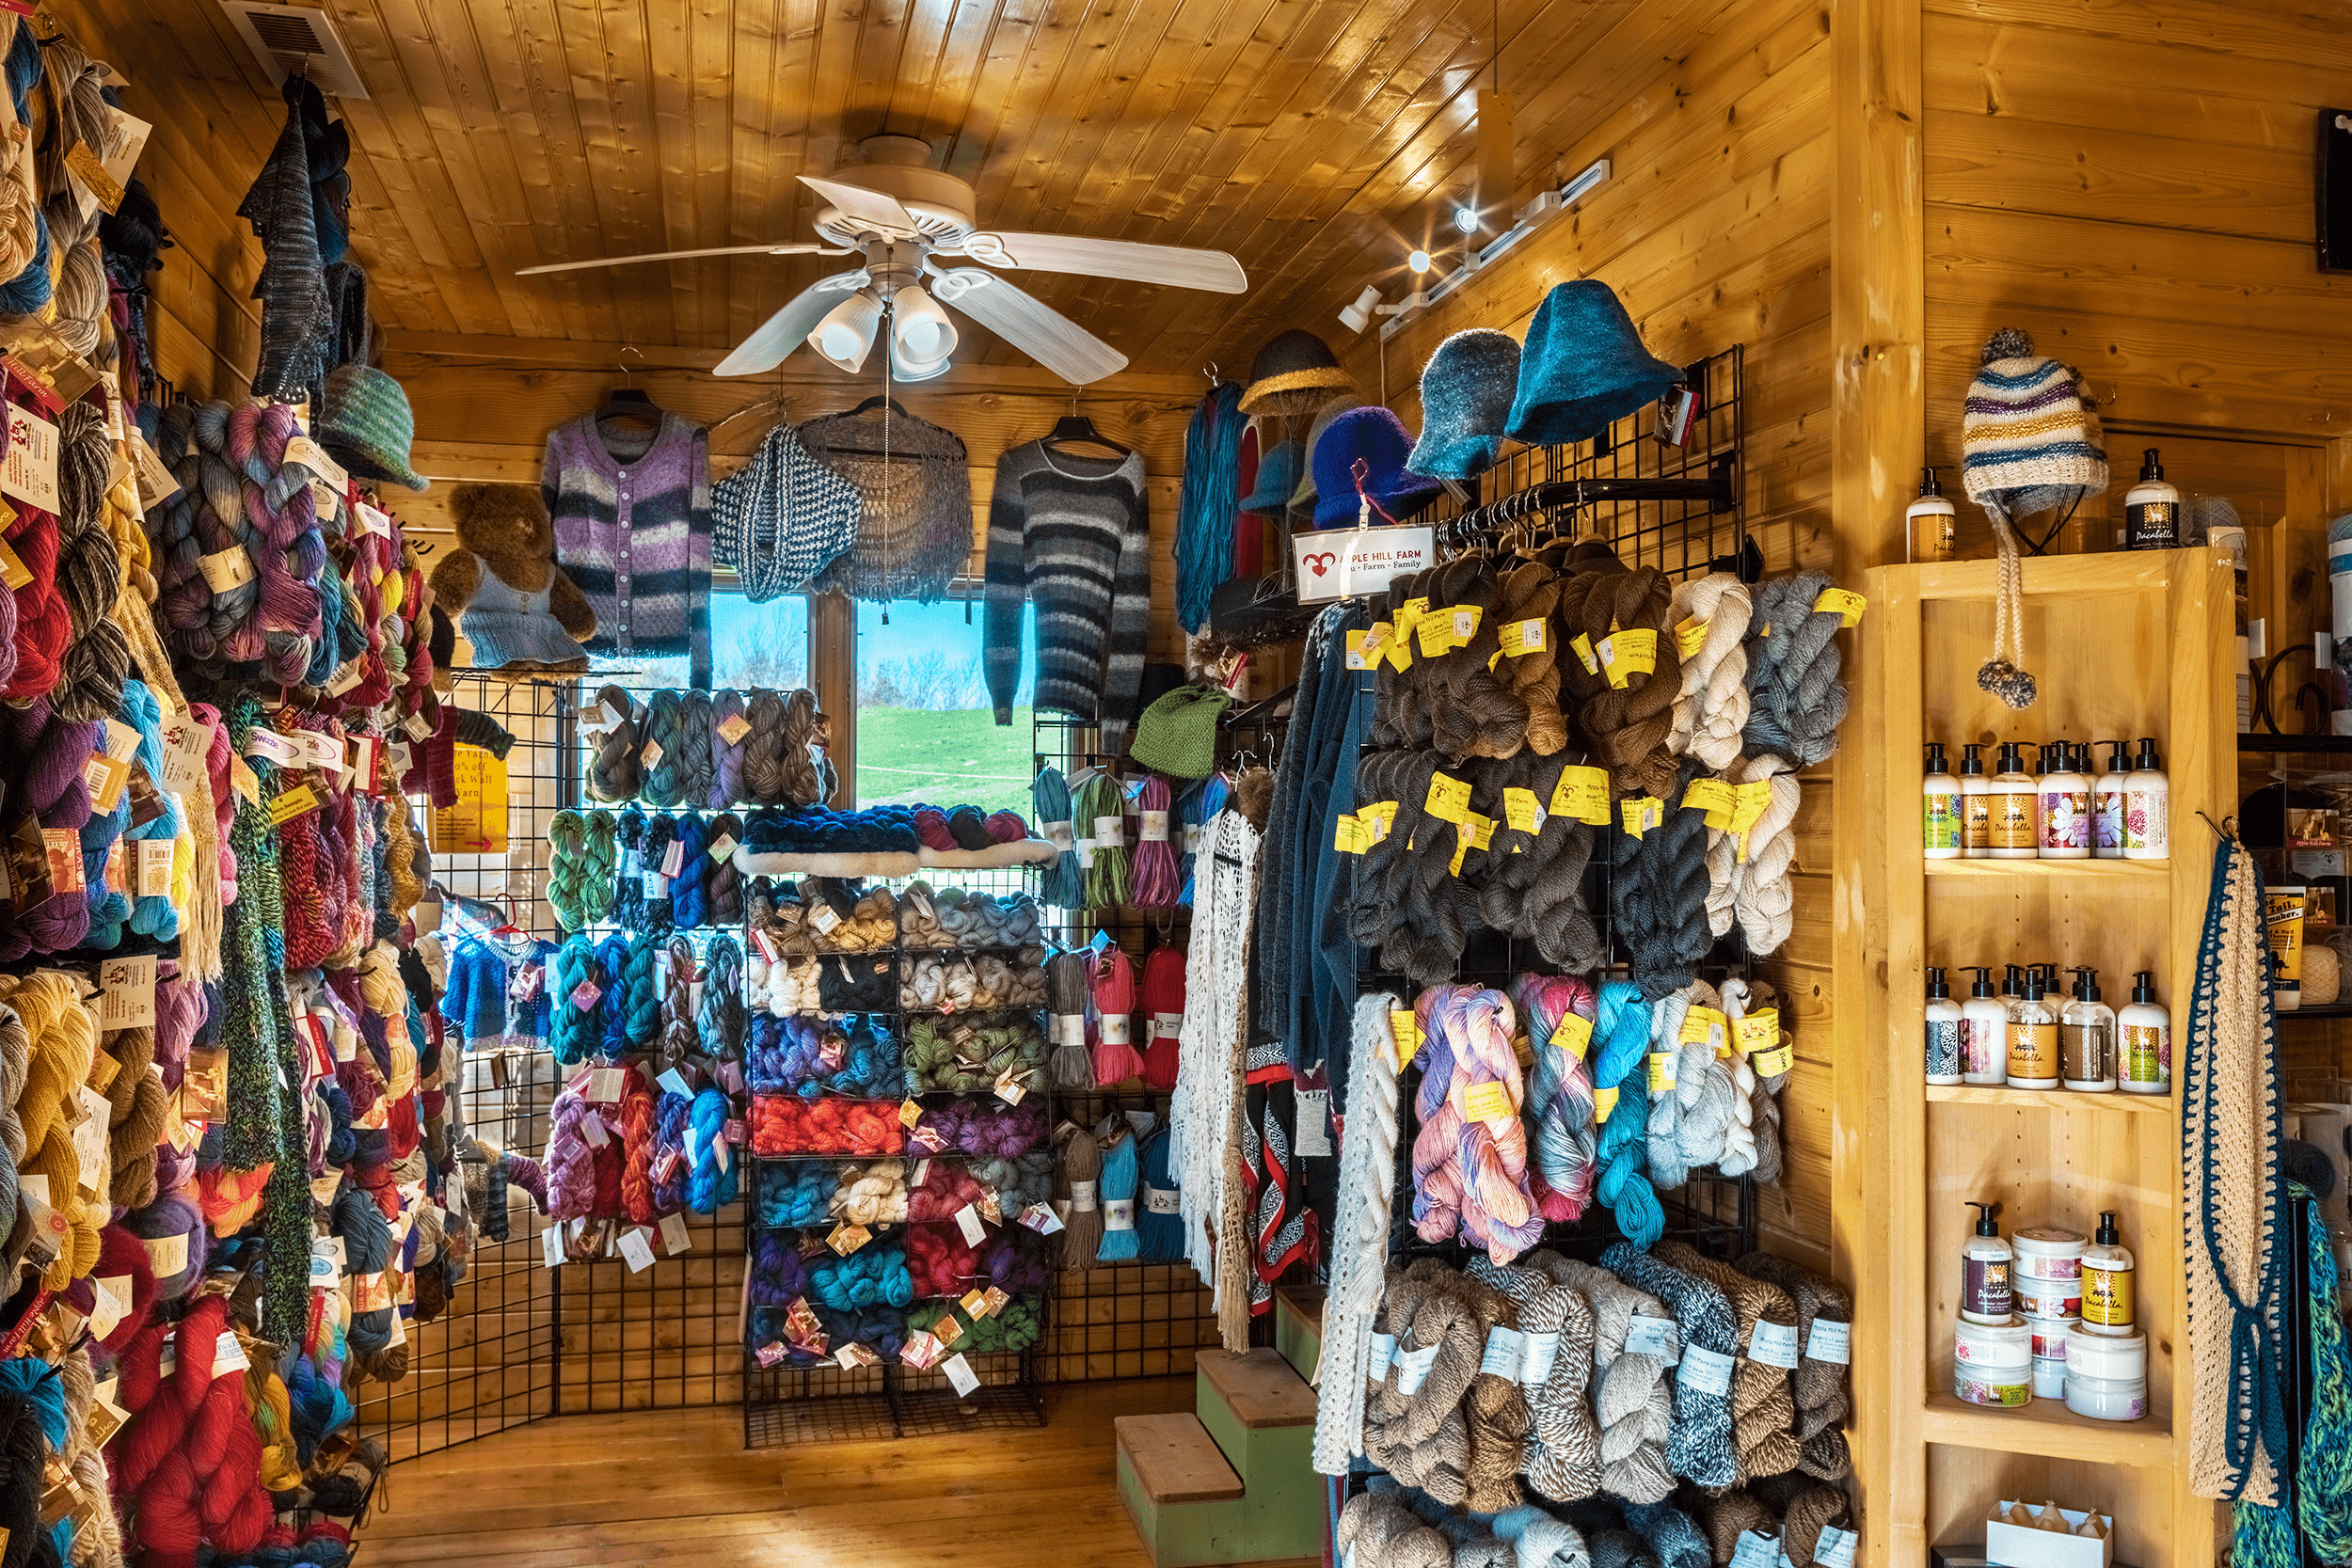 The onsite store offers a wide selection of alpaca yarn. Items marked with a yellow label are made of yarn from the farm's herd.